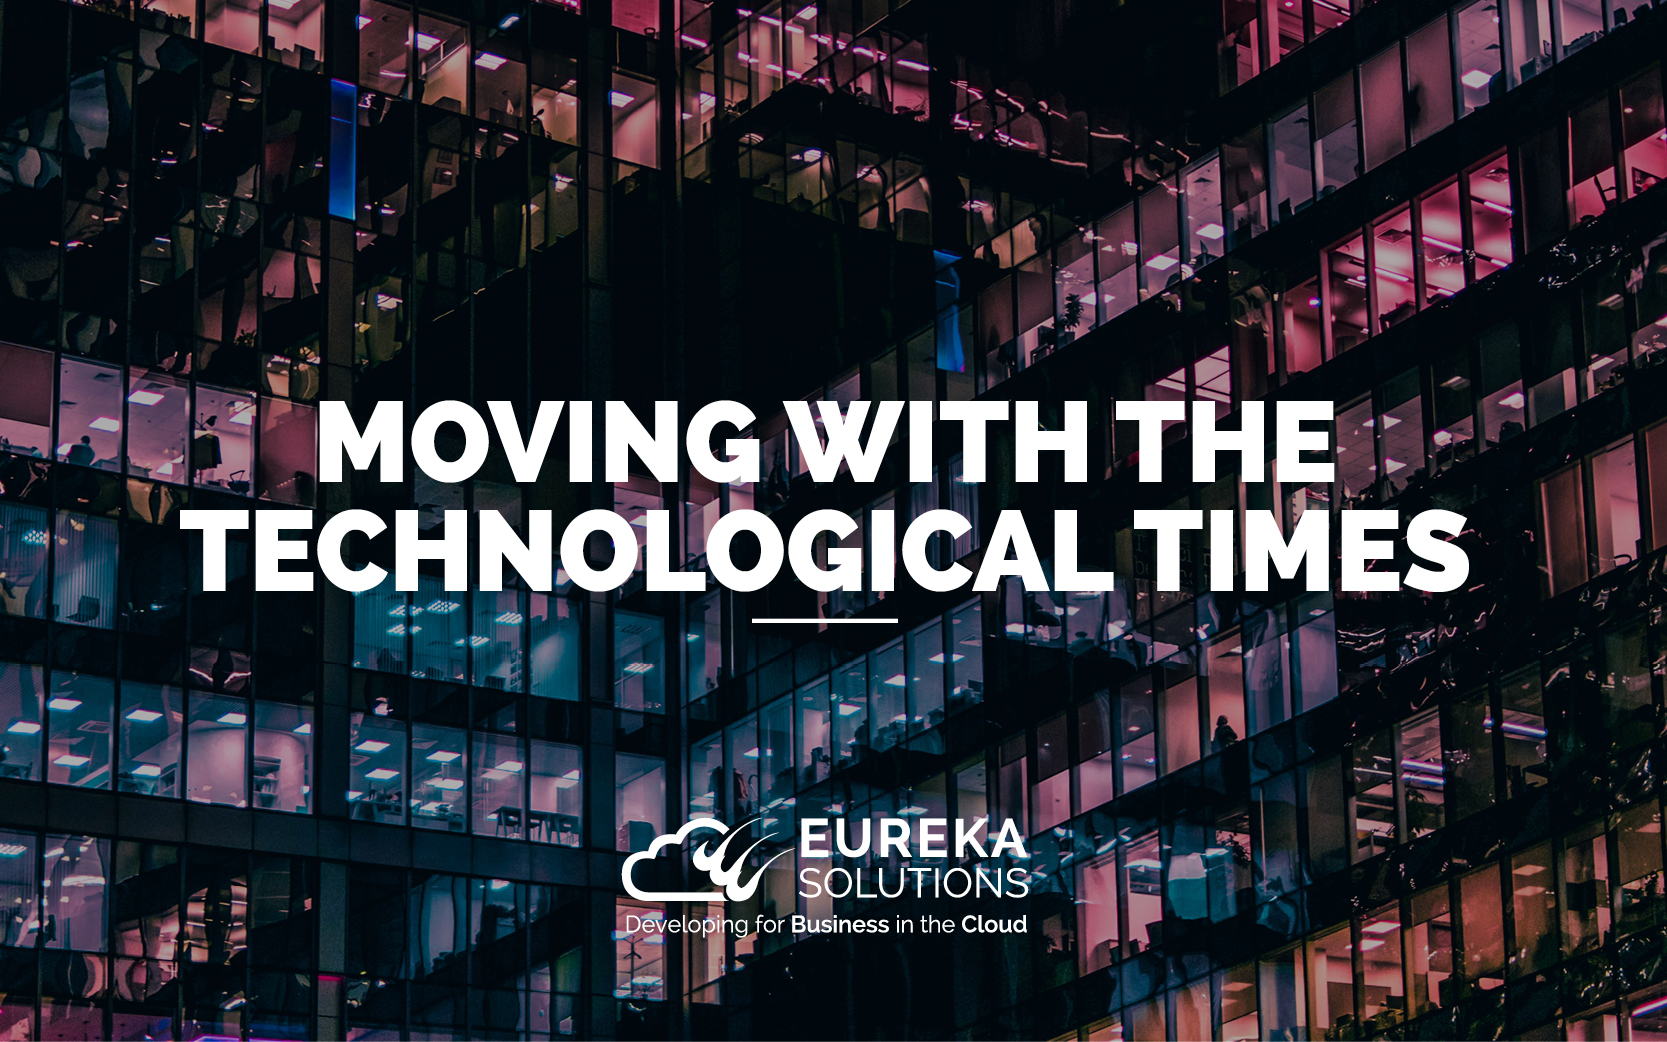 Innovate to Survive – Moving With the Technological Times